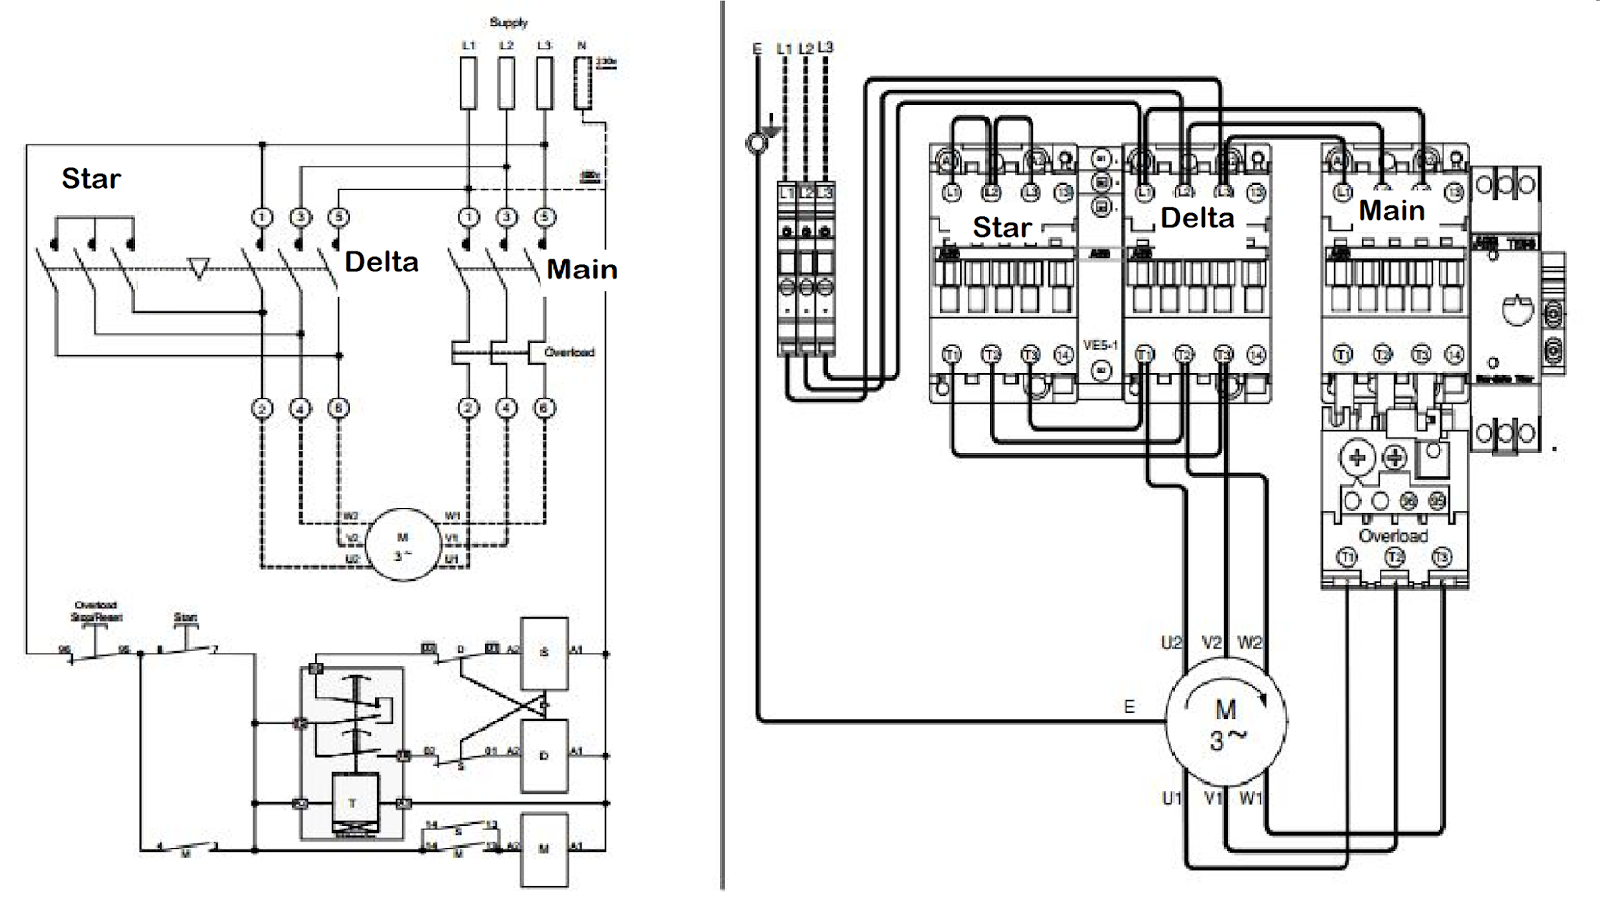 5 Star Delta Starter Control Wiring Diagram : Star delta starter connection